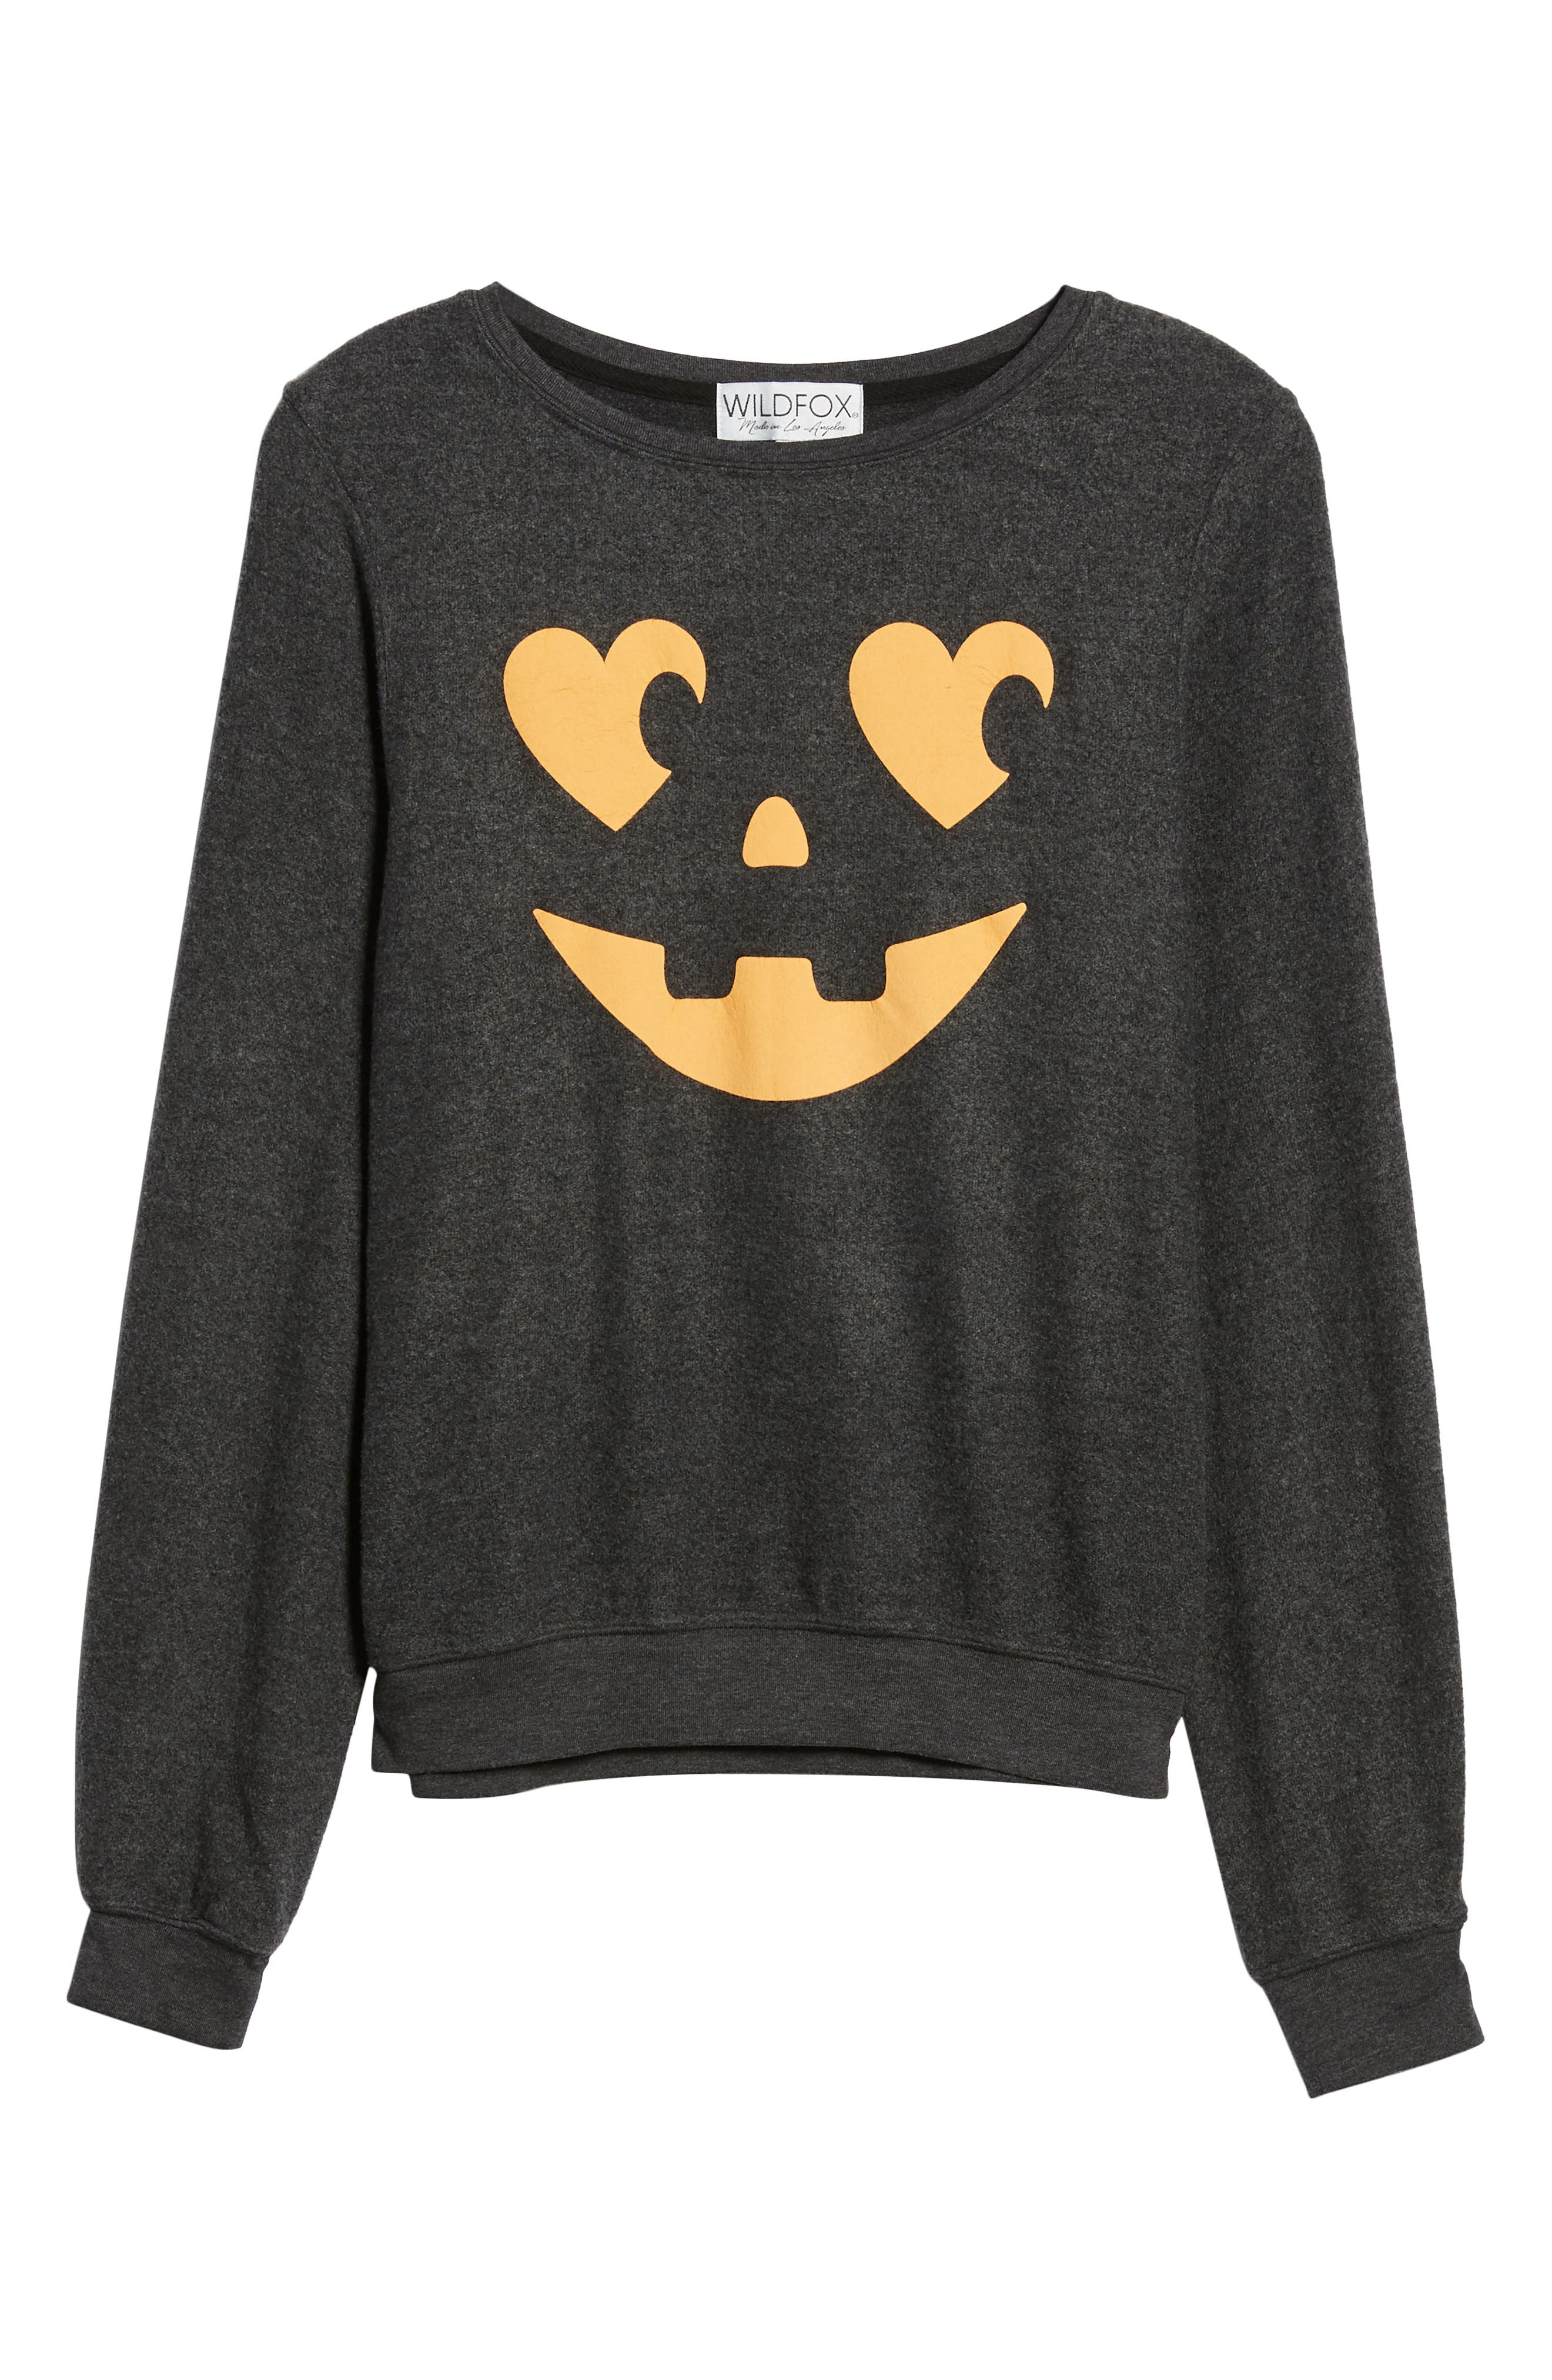 Jack O' Hearts Baggy Beach Jumper Pullover,                             Alternate thumbnail 6, color,                             020